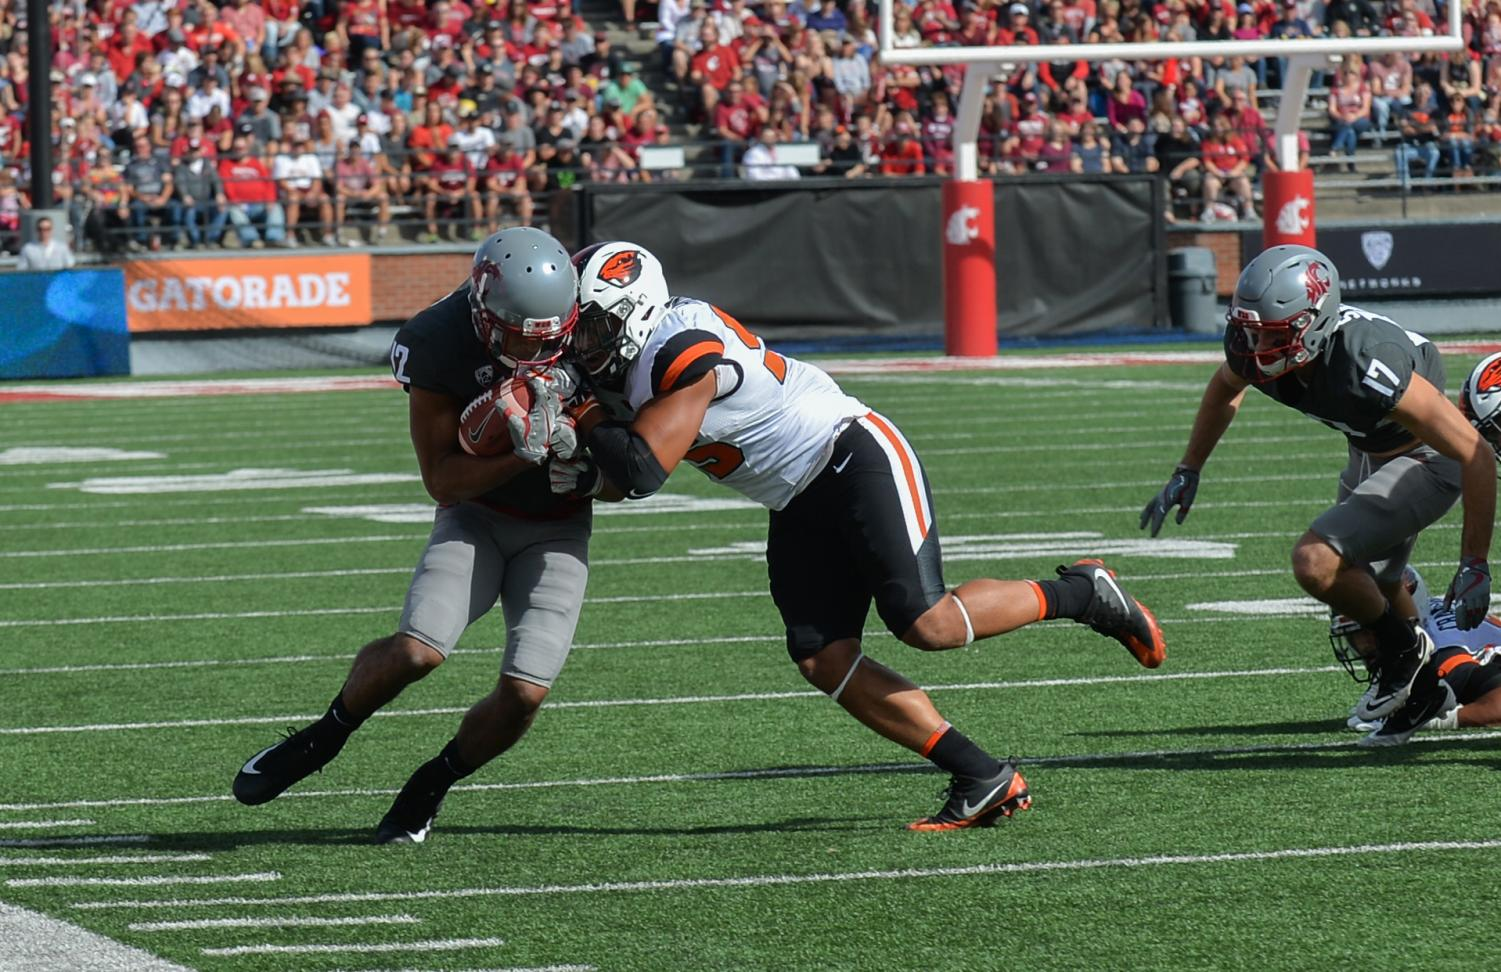 Then-sophomore wide receiver Dezmon Patmon atempts to break free from a defensive player during the game against OSU on Sept. 16 at Martin Stadium.